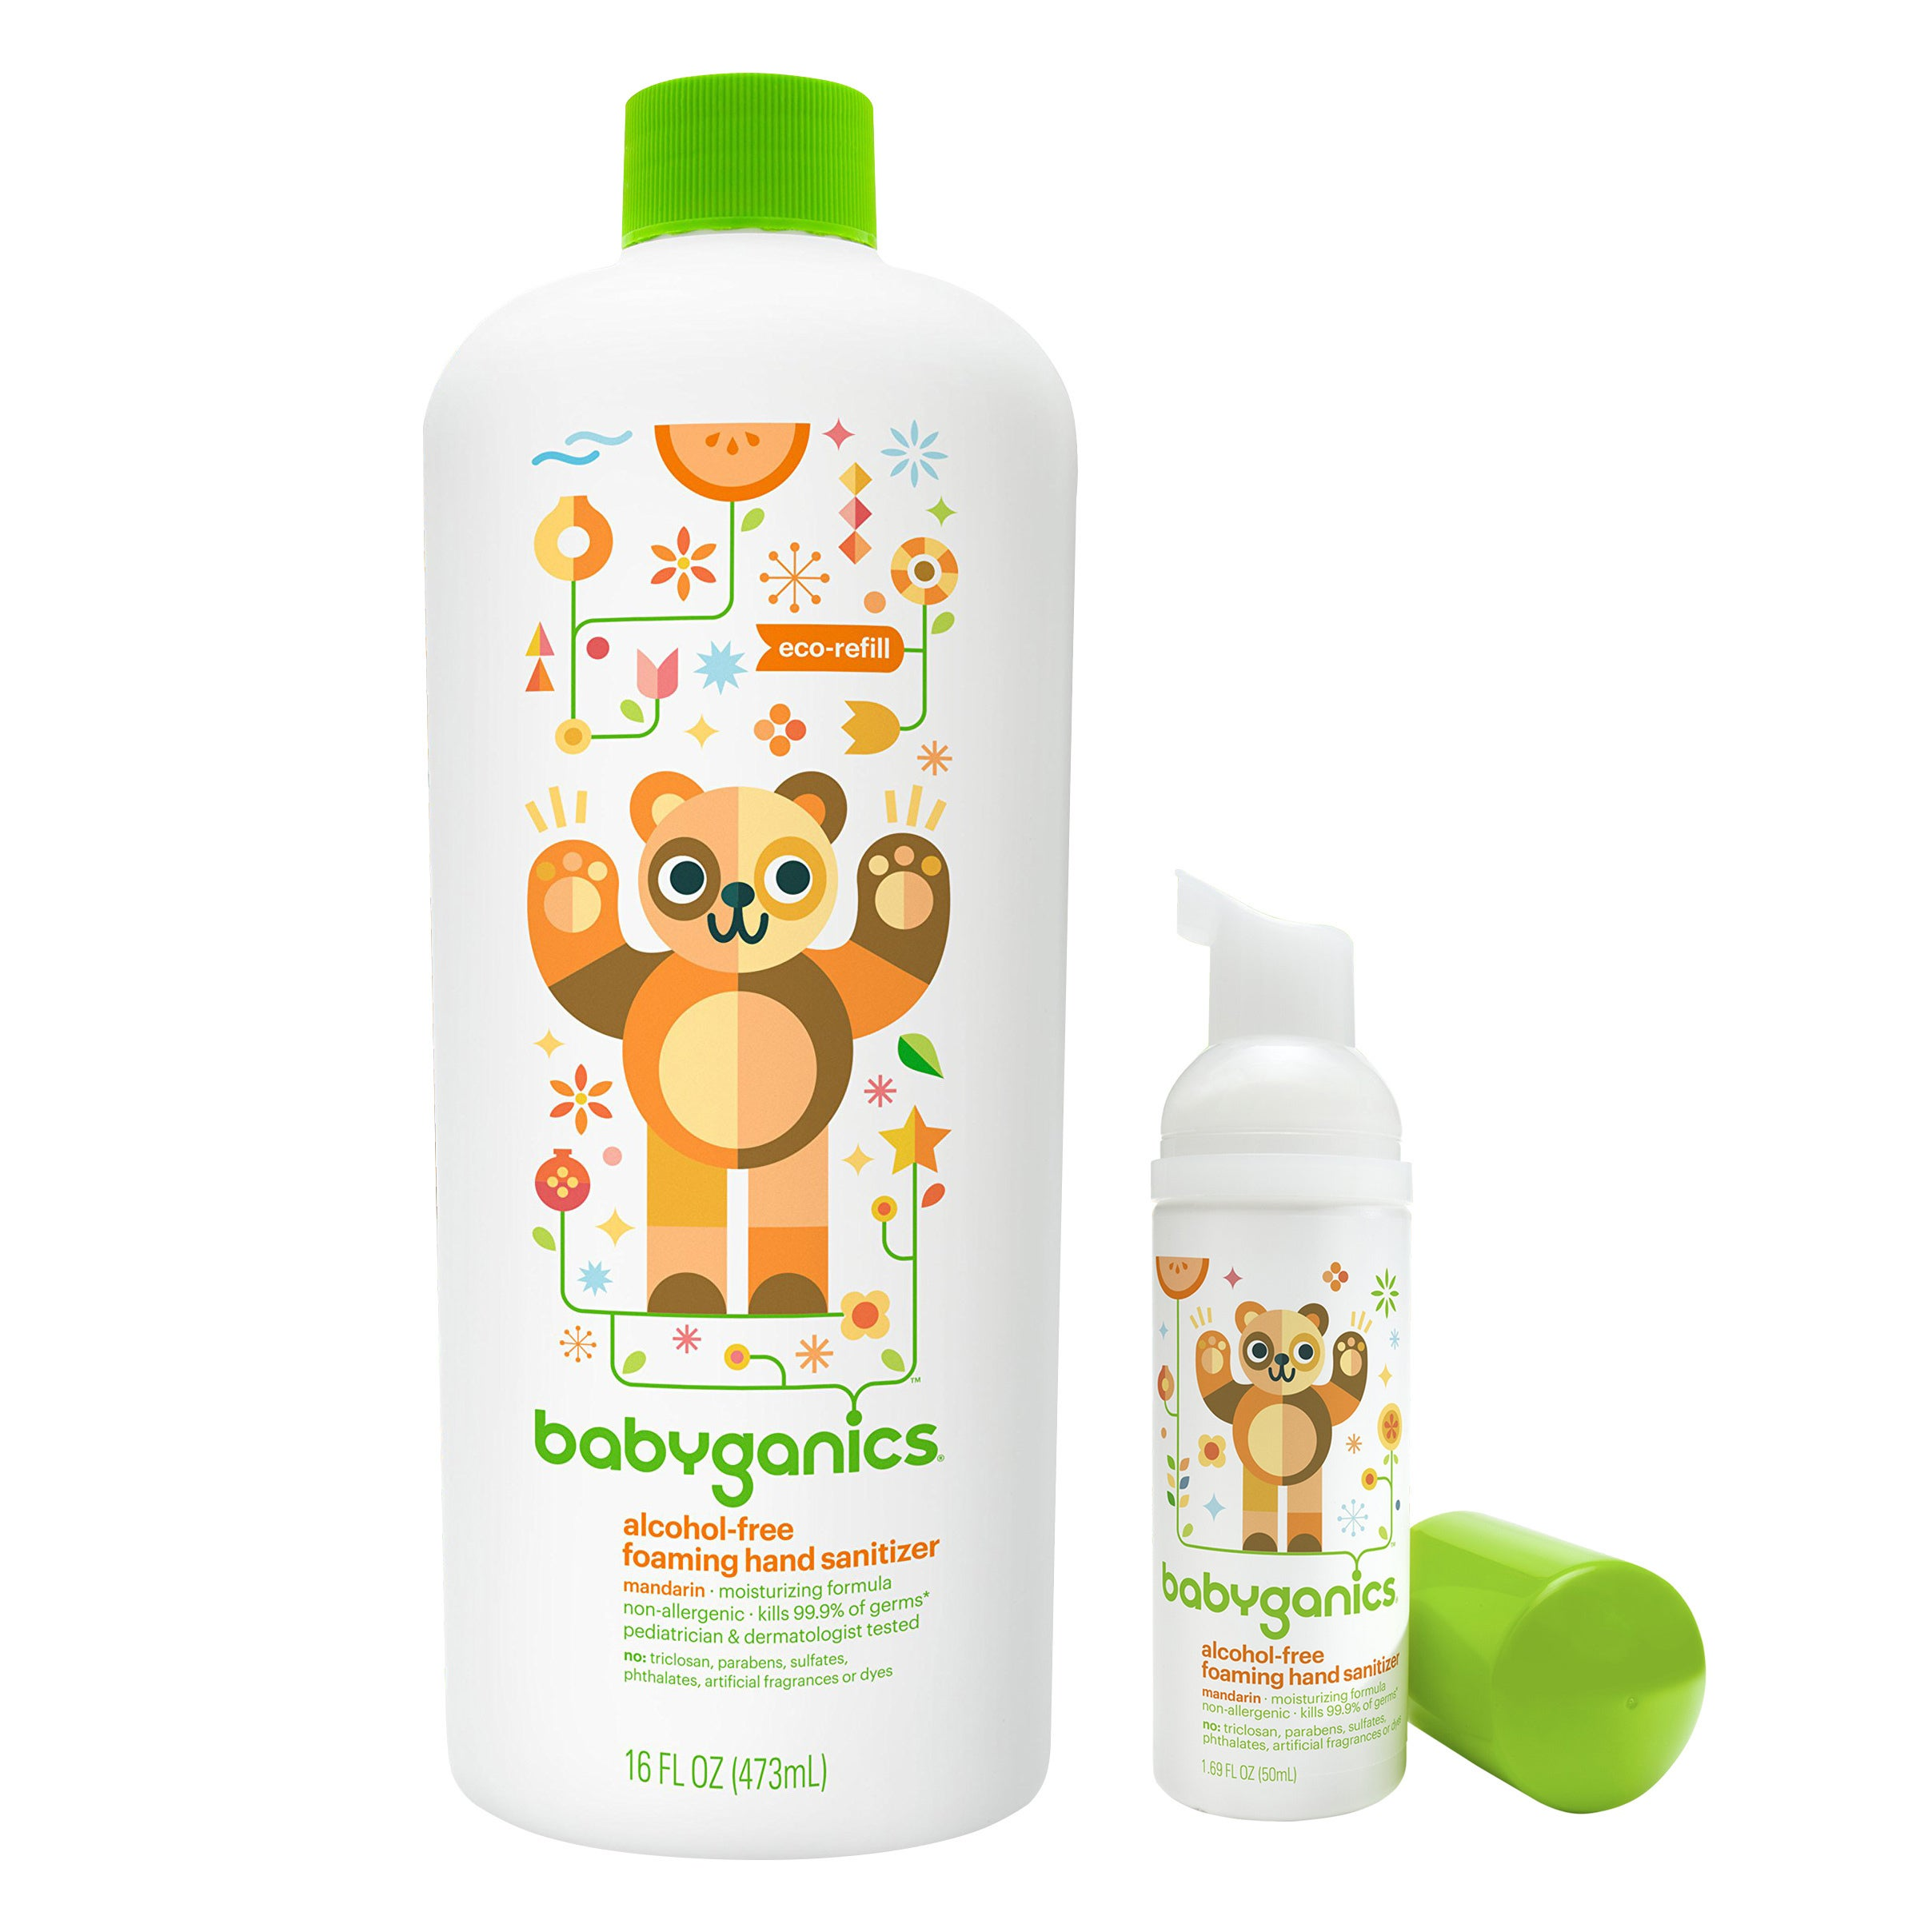 BabyGanics Foaming Hand Sanitizer for On-The-Go with 16 O...